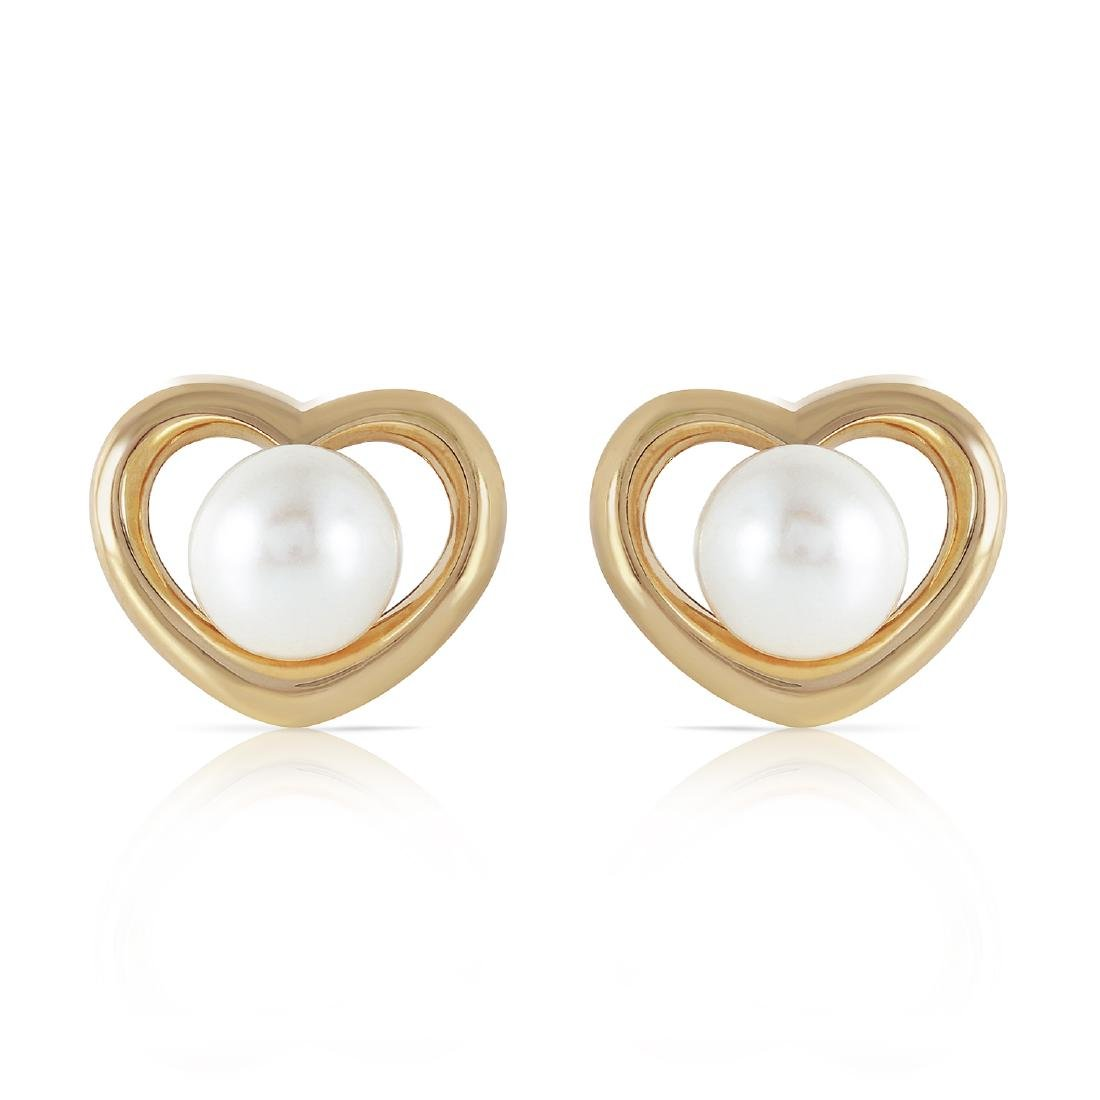 Genuine 4 ctw Pearl Earrings Jewelry 14KT Yellow Gold -